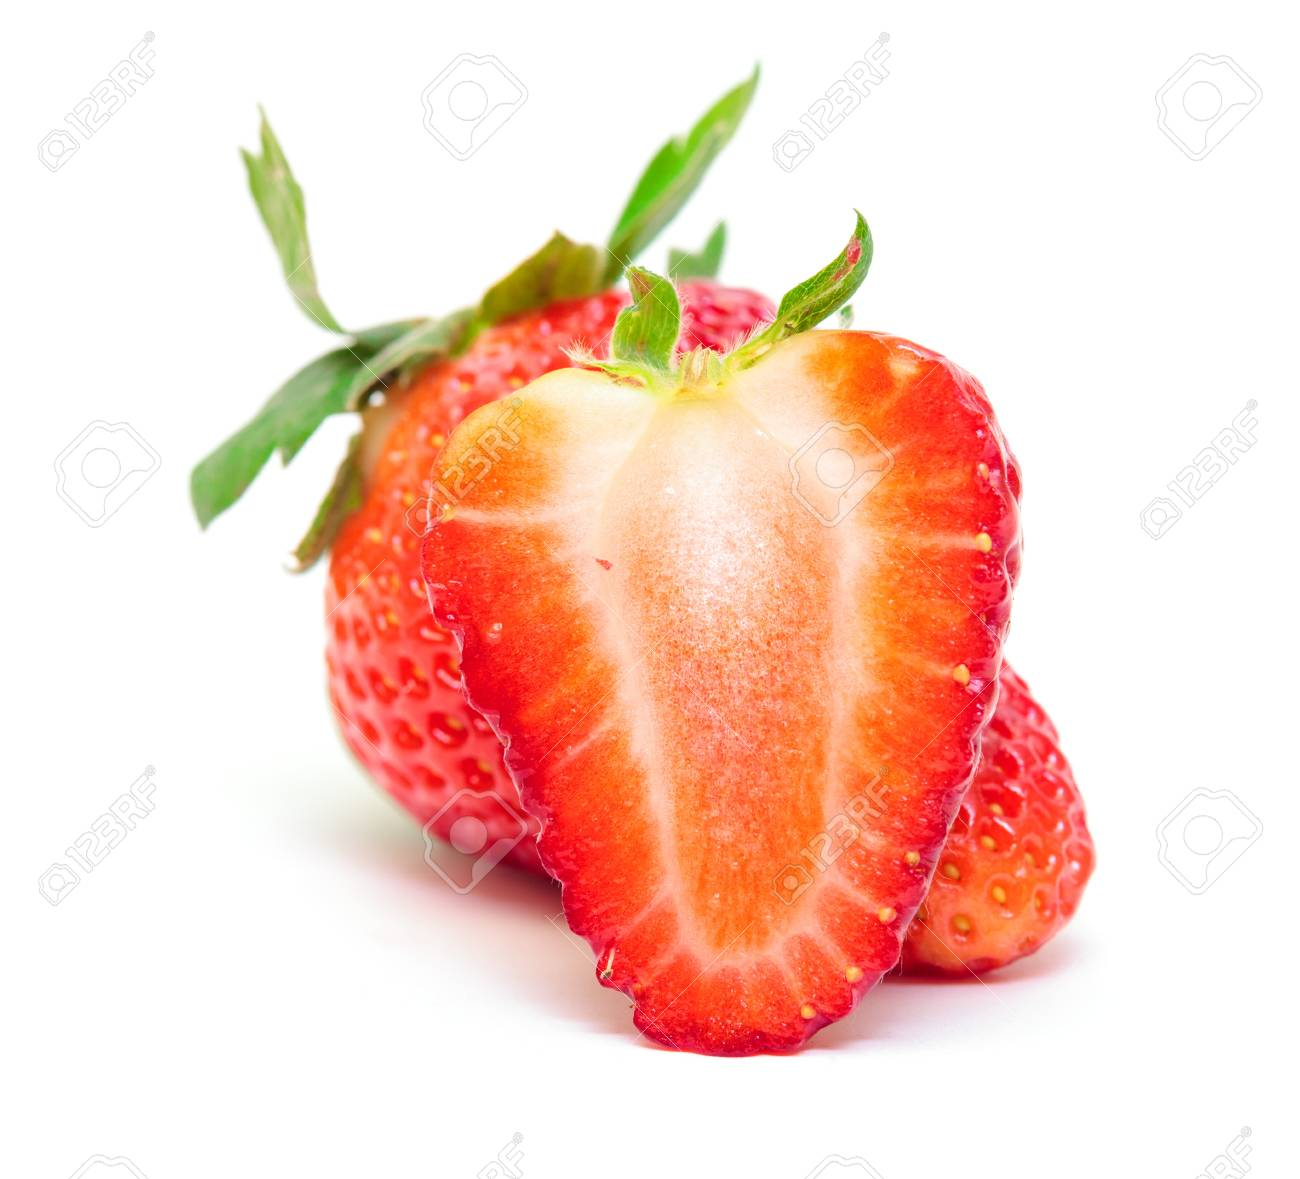 Ripe Berry Red Strawberry on white background Stock Photo - 18455842